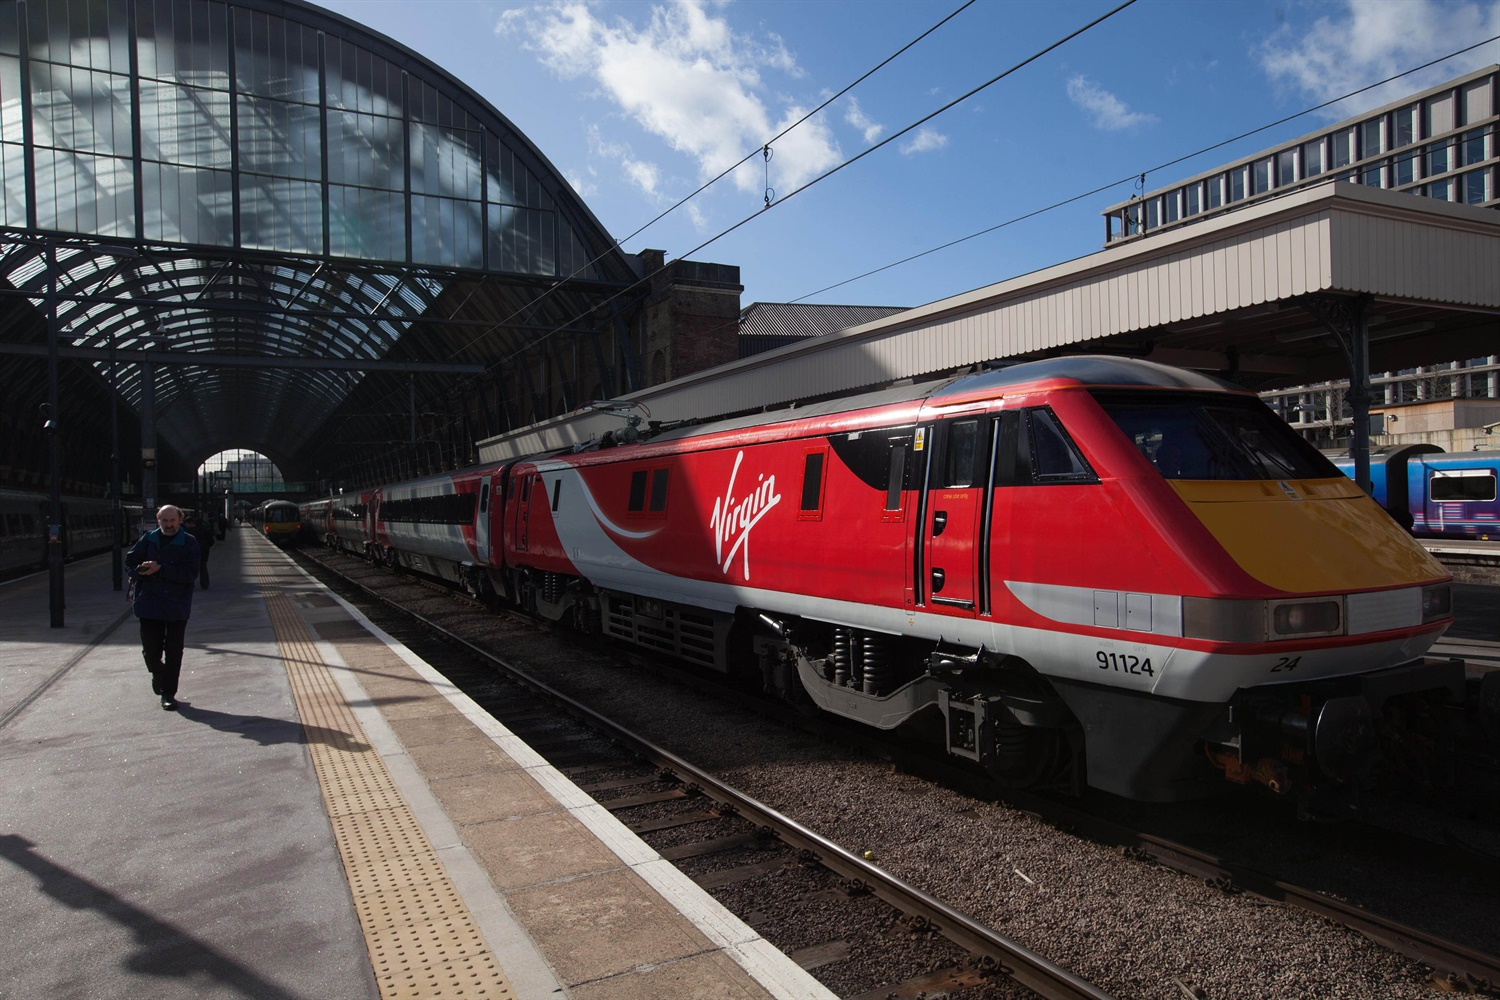 Virgin set 59 second punctuality target